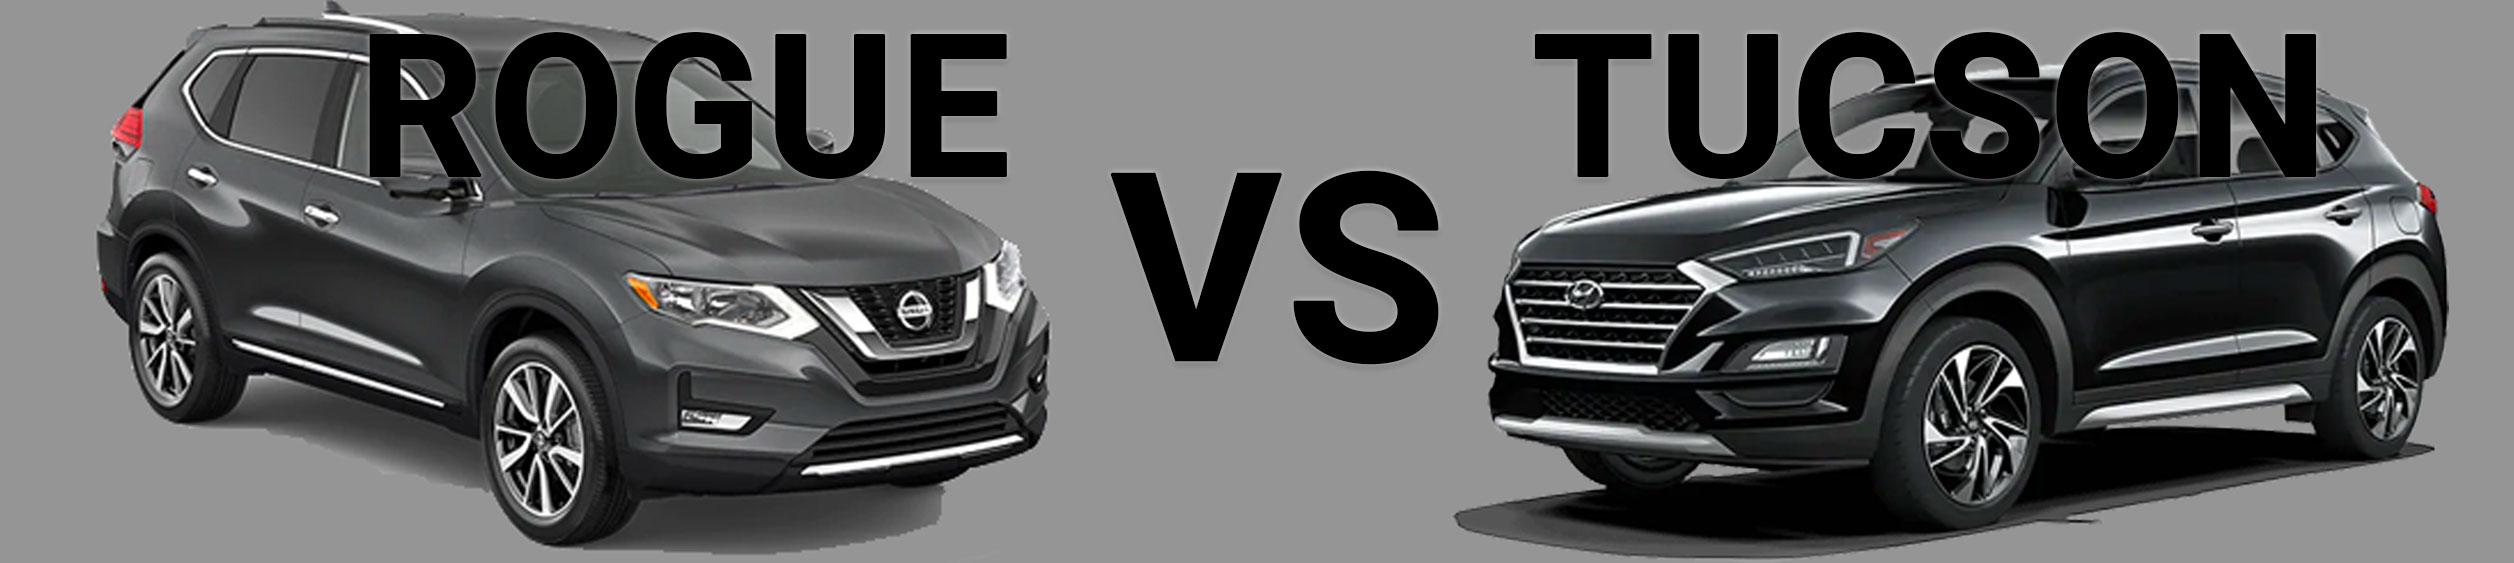 Rogue Vs. Tucson comparison of the two vehicles